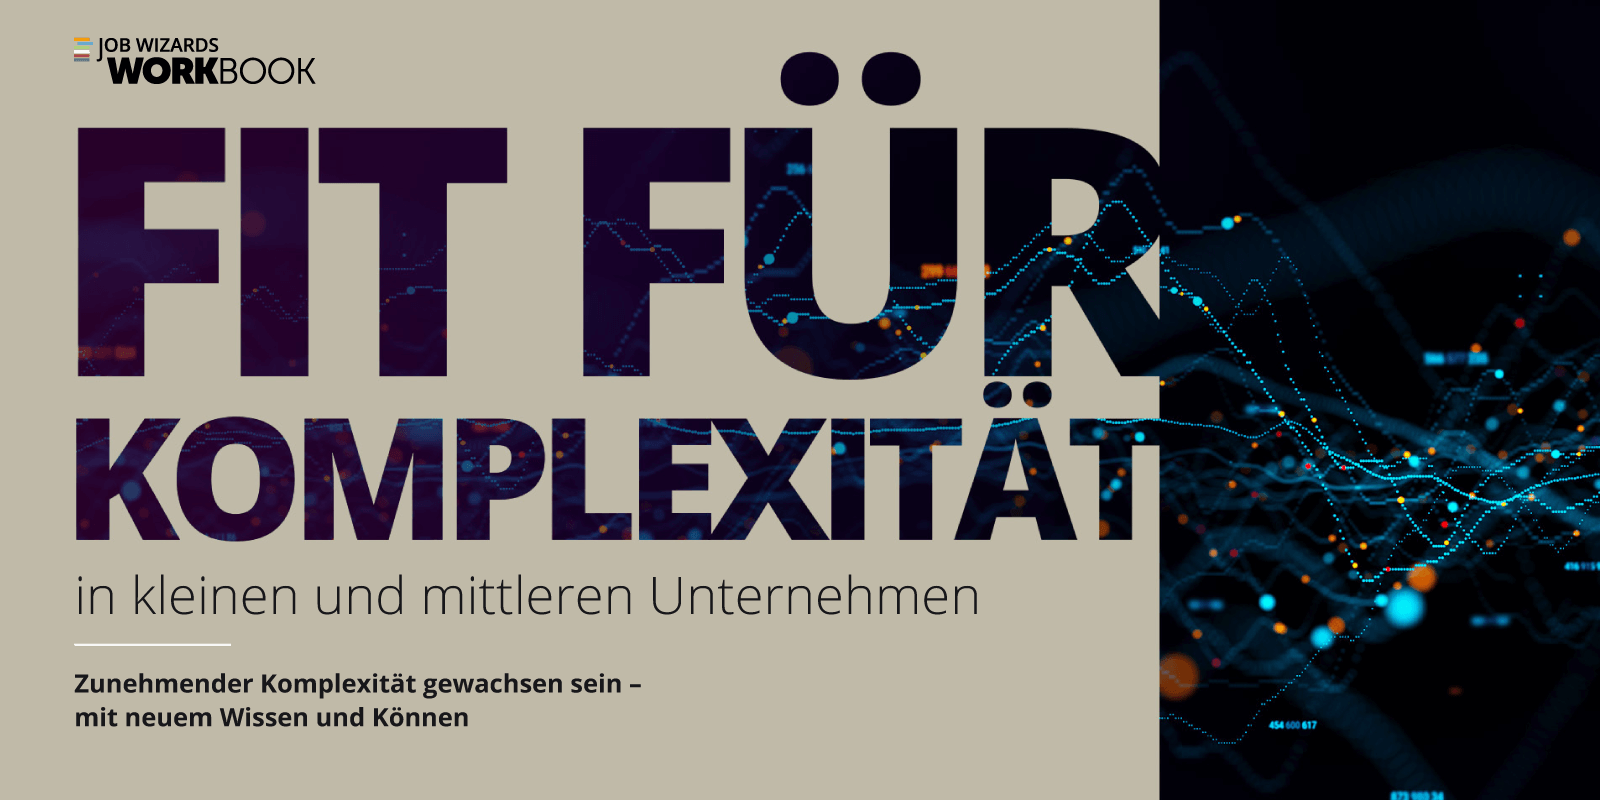 Titelblatt Workbook 4 Komplexitätsmanagement